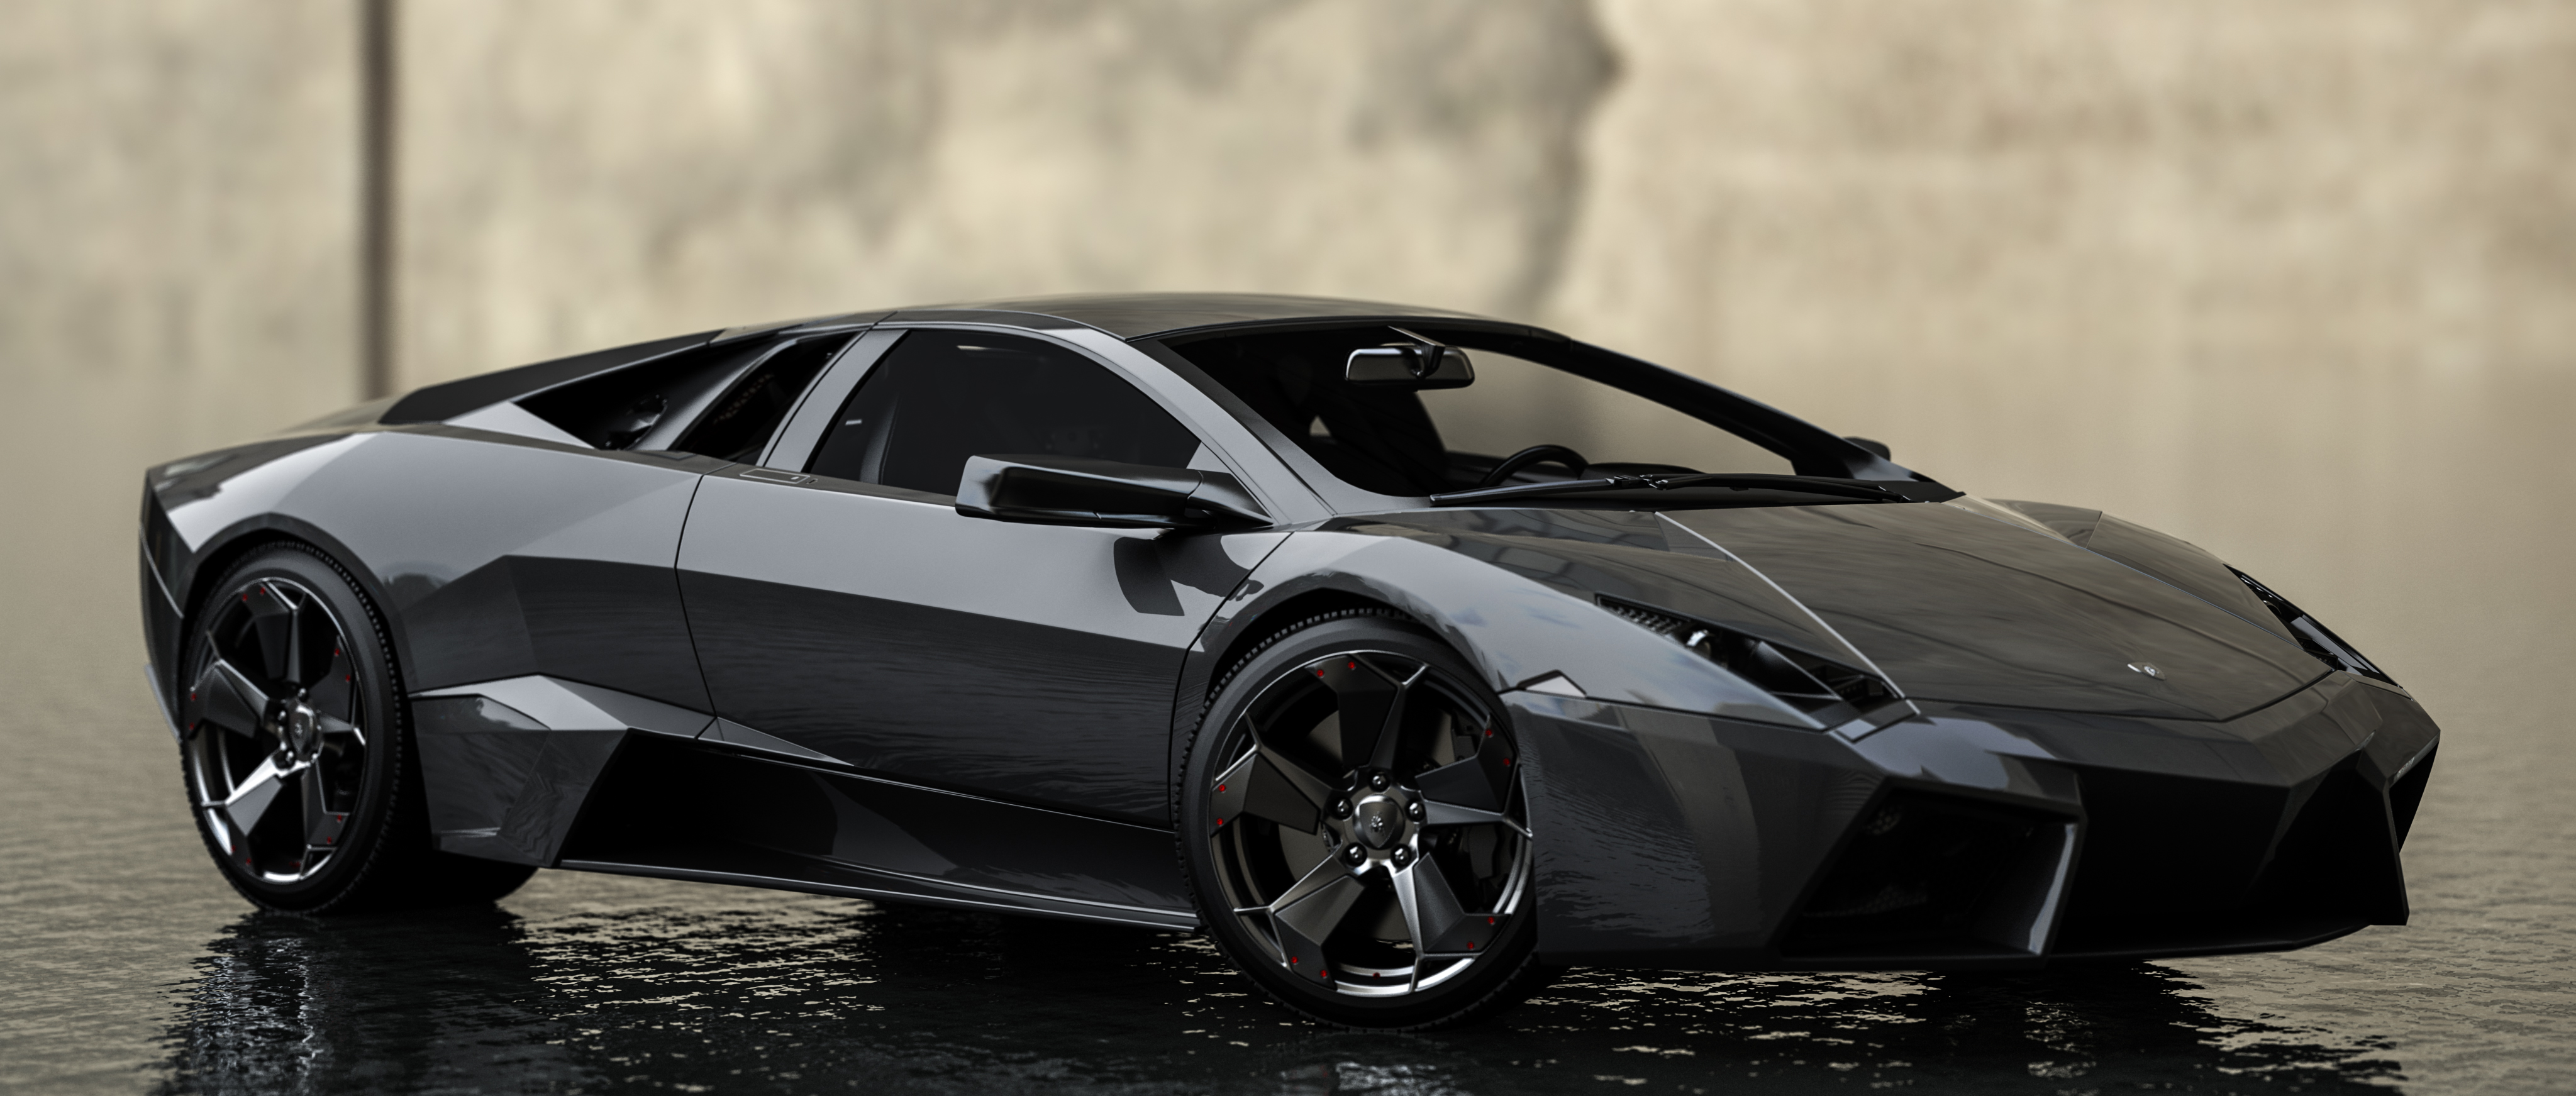 lamborghini reventon nomana bakes. Black Bedroom Furniture Sets. Home Design Ideas